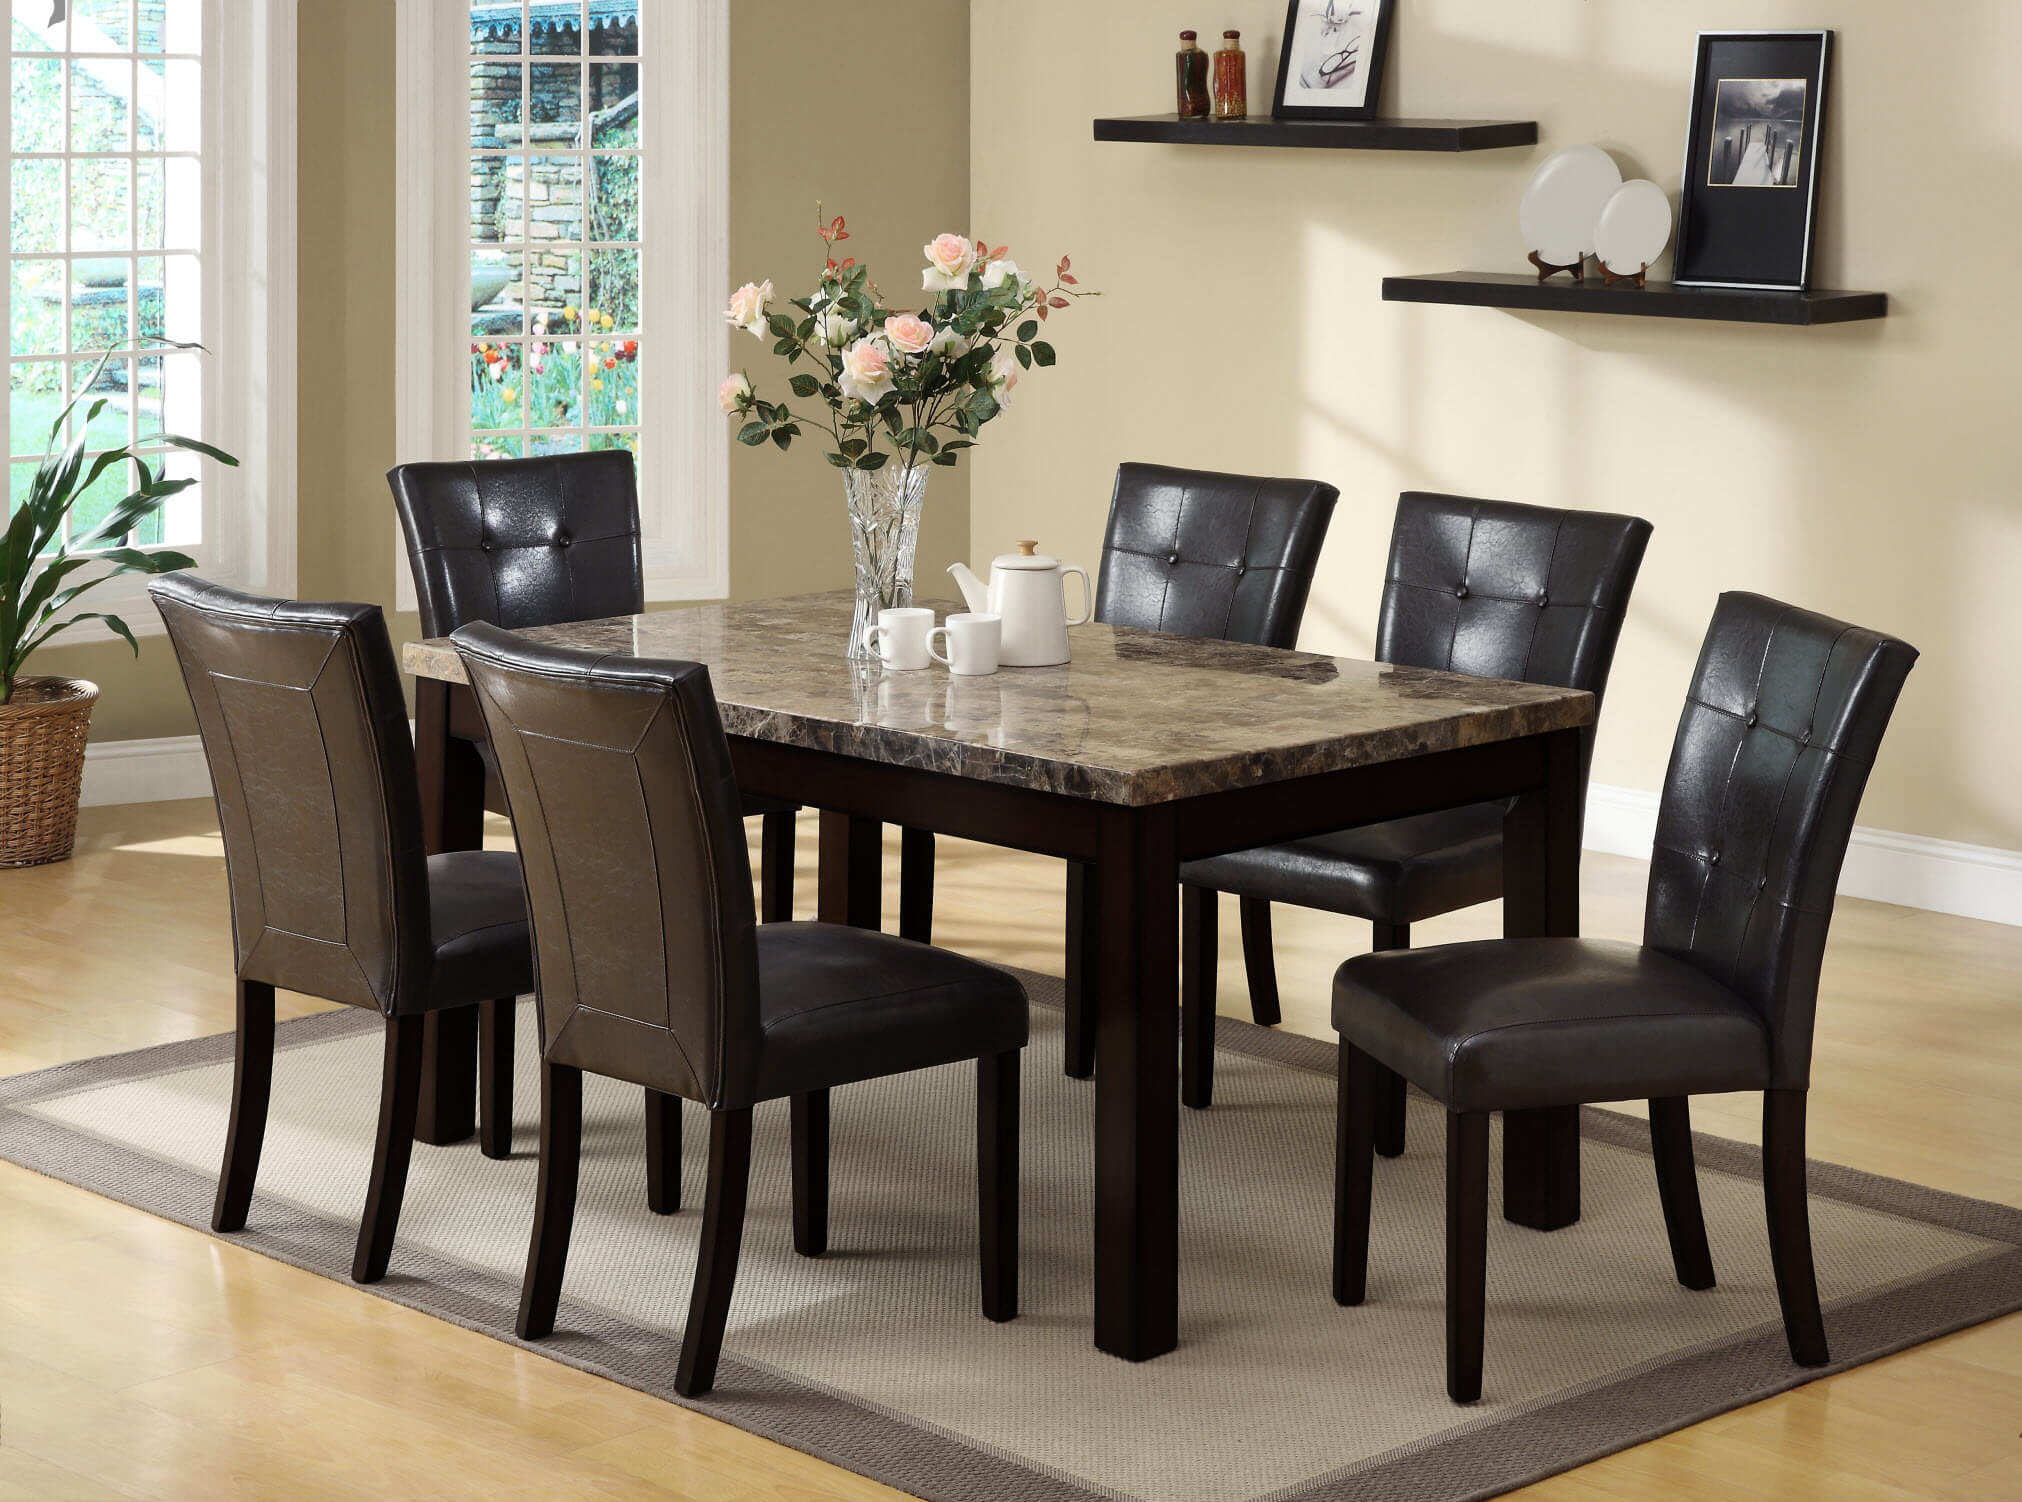 2267 Bruce 5 Piece Espresso Dining Set By Crown Mark